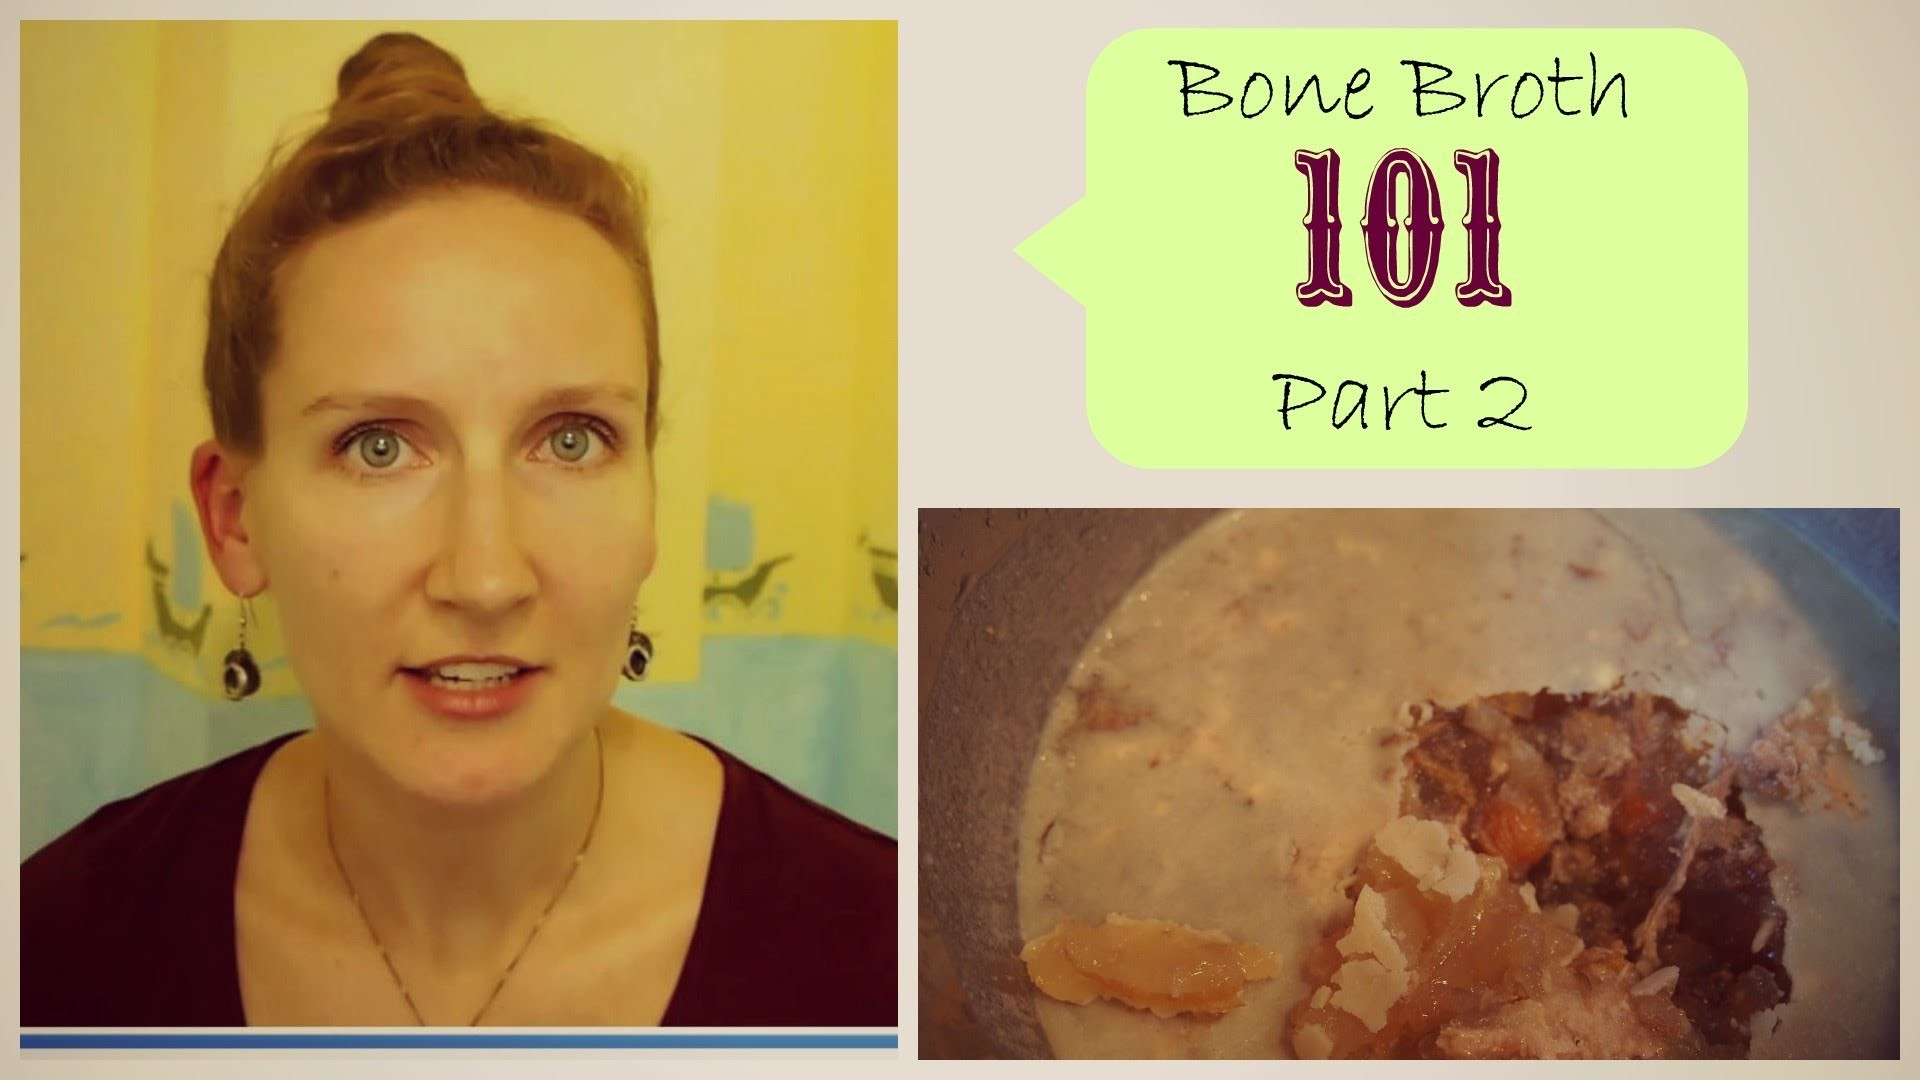 Bone Broth 101 - Part 2: How To Make It, Store It and Use It   VitaLivesFree